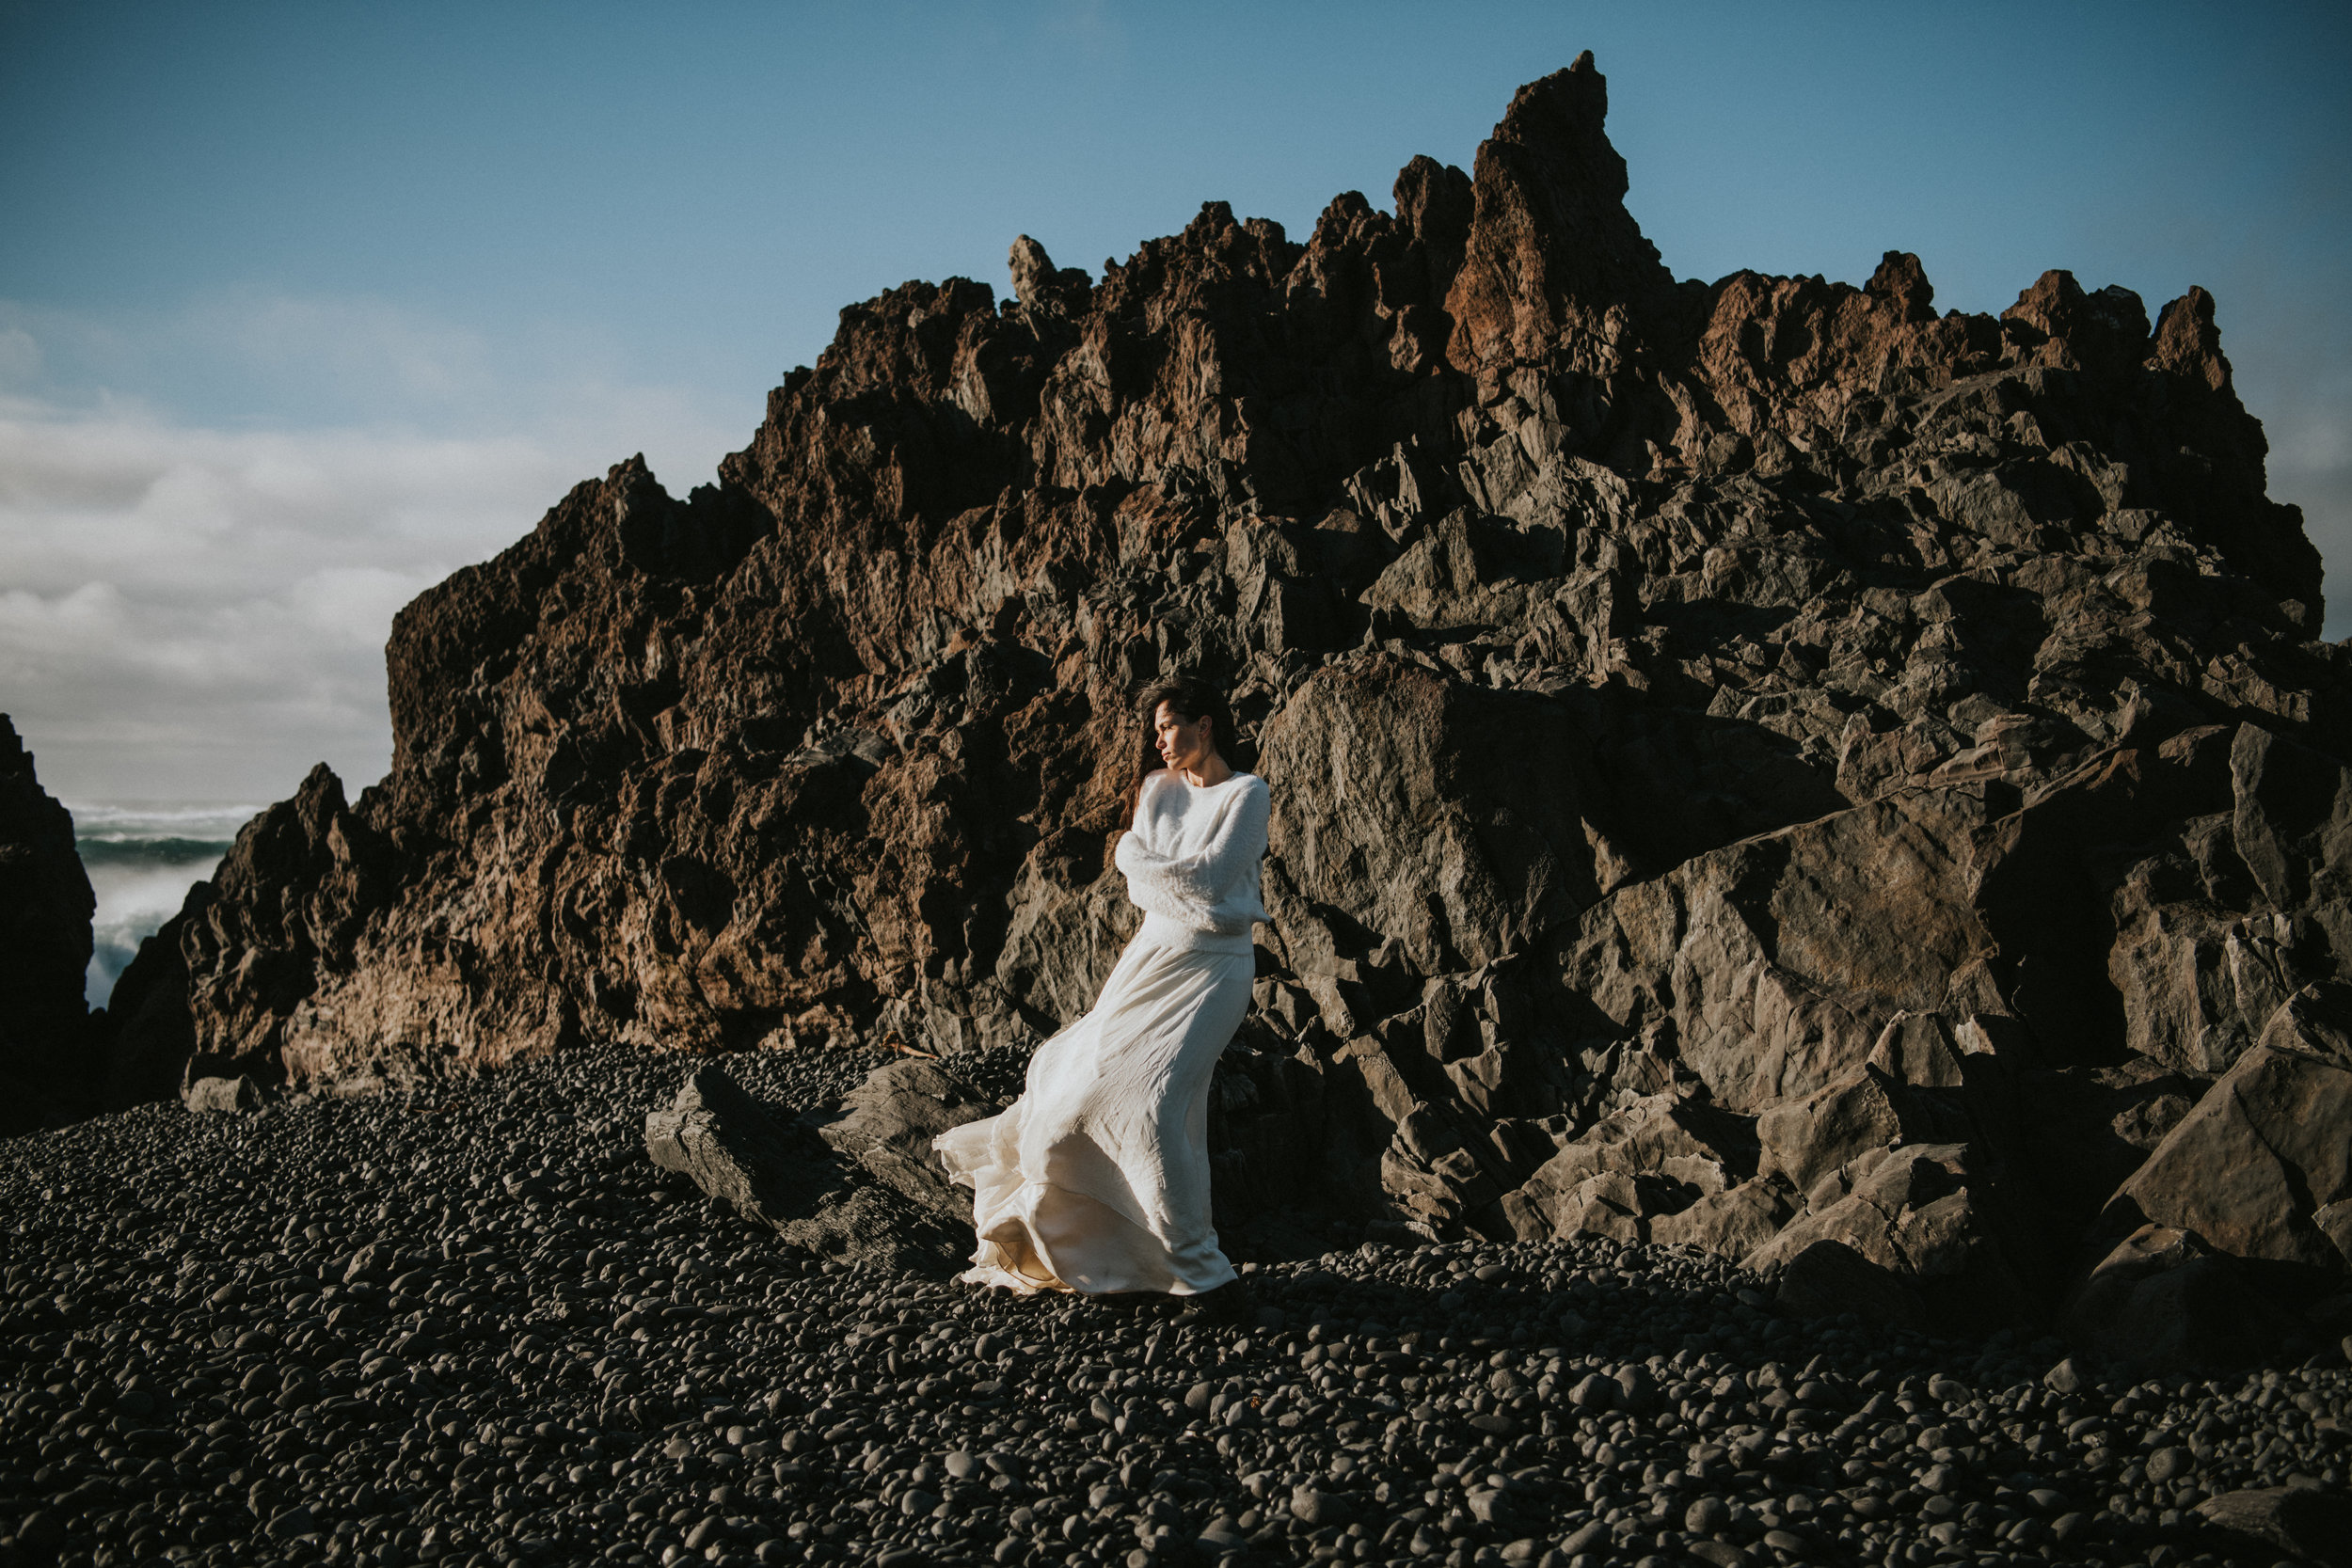 Natalie-Vitaly-Iceland-Elopement-Photographer-Videographer-34